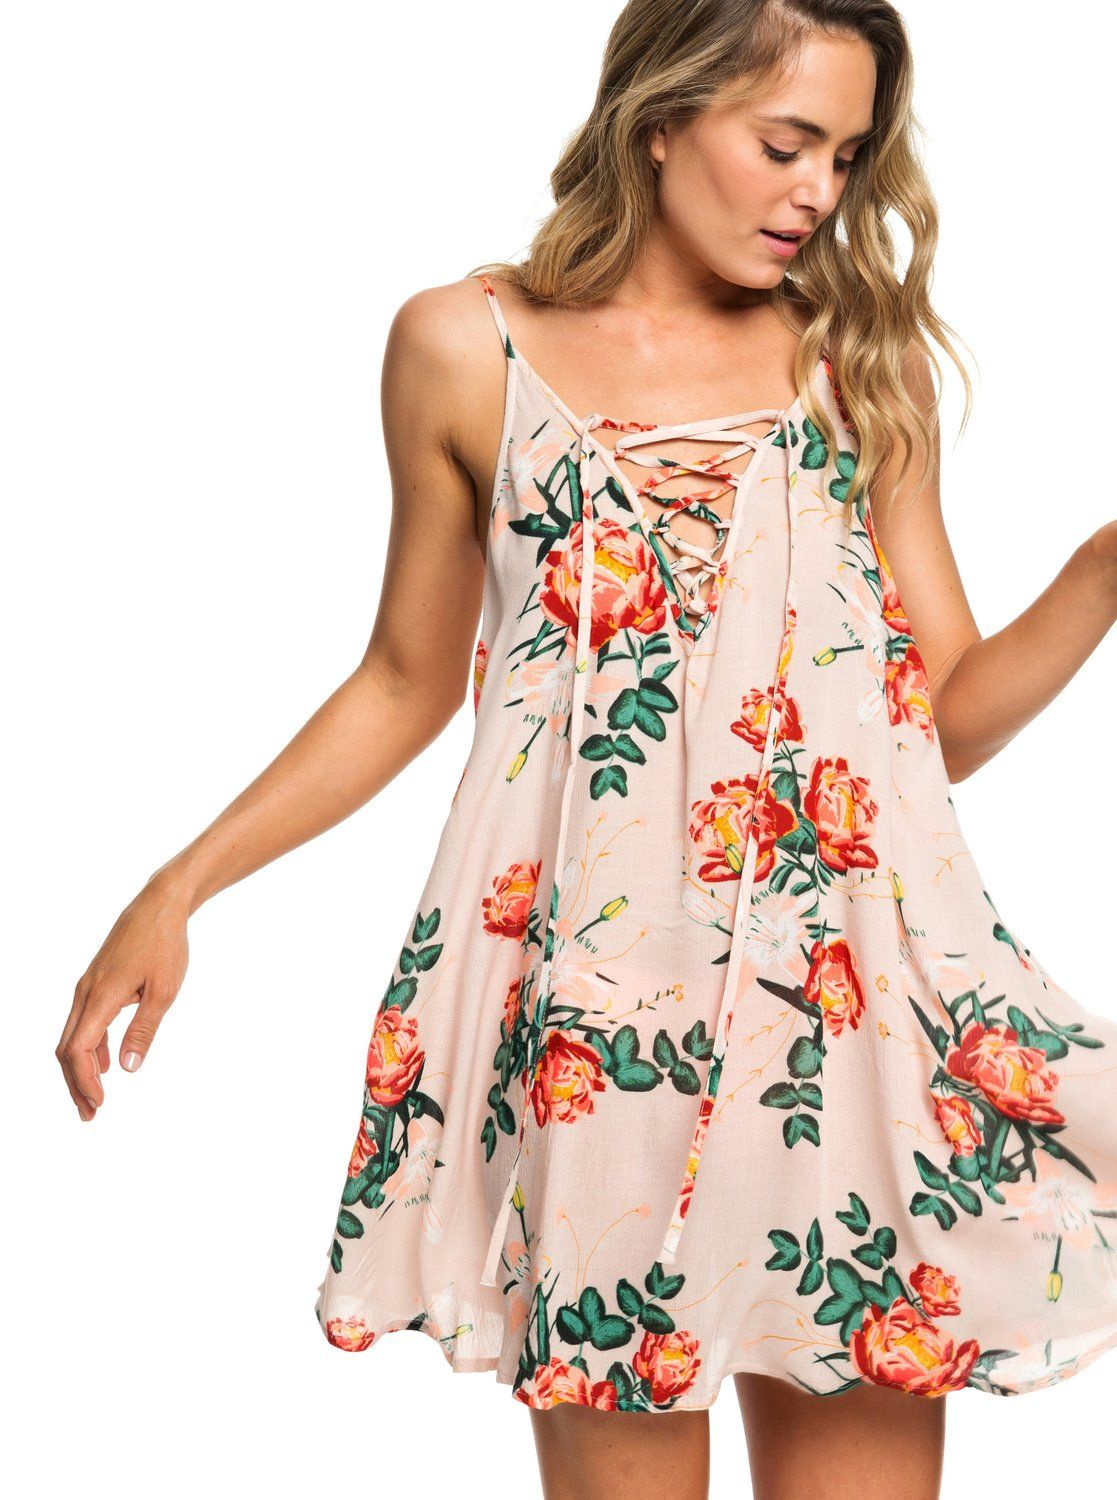 c01bd8c2d0 Softly Love Strappy Beach Dress in 2019   outfits   Dresses, Fashion ...